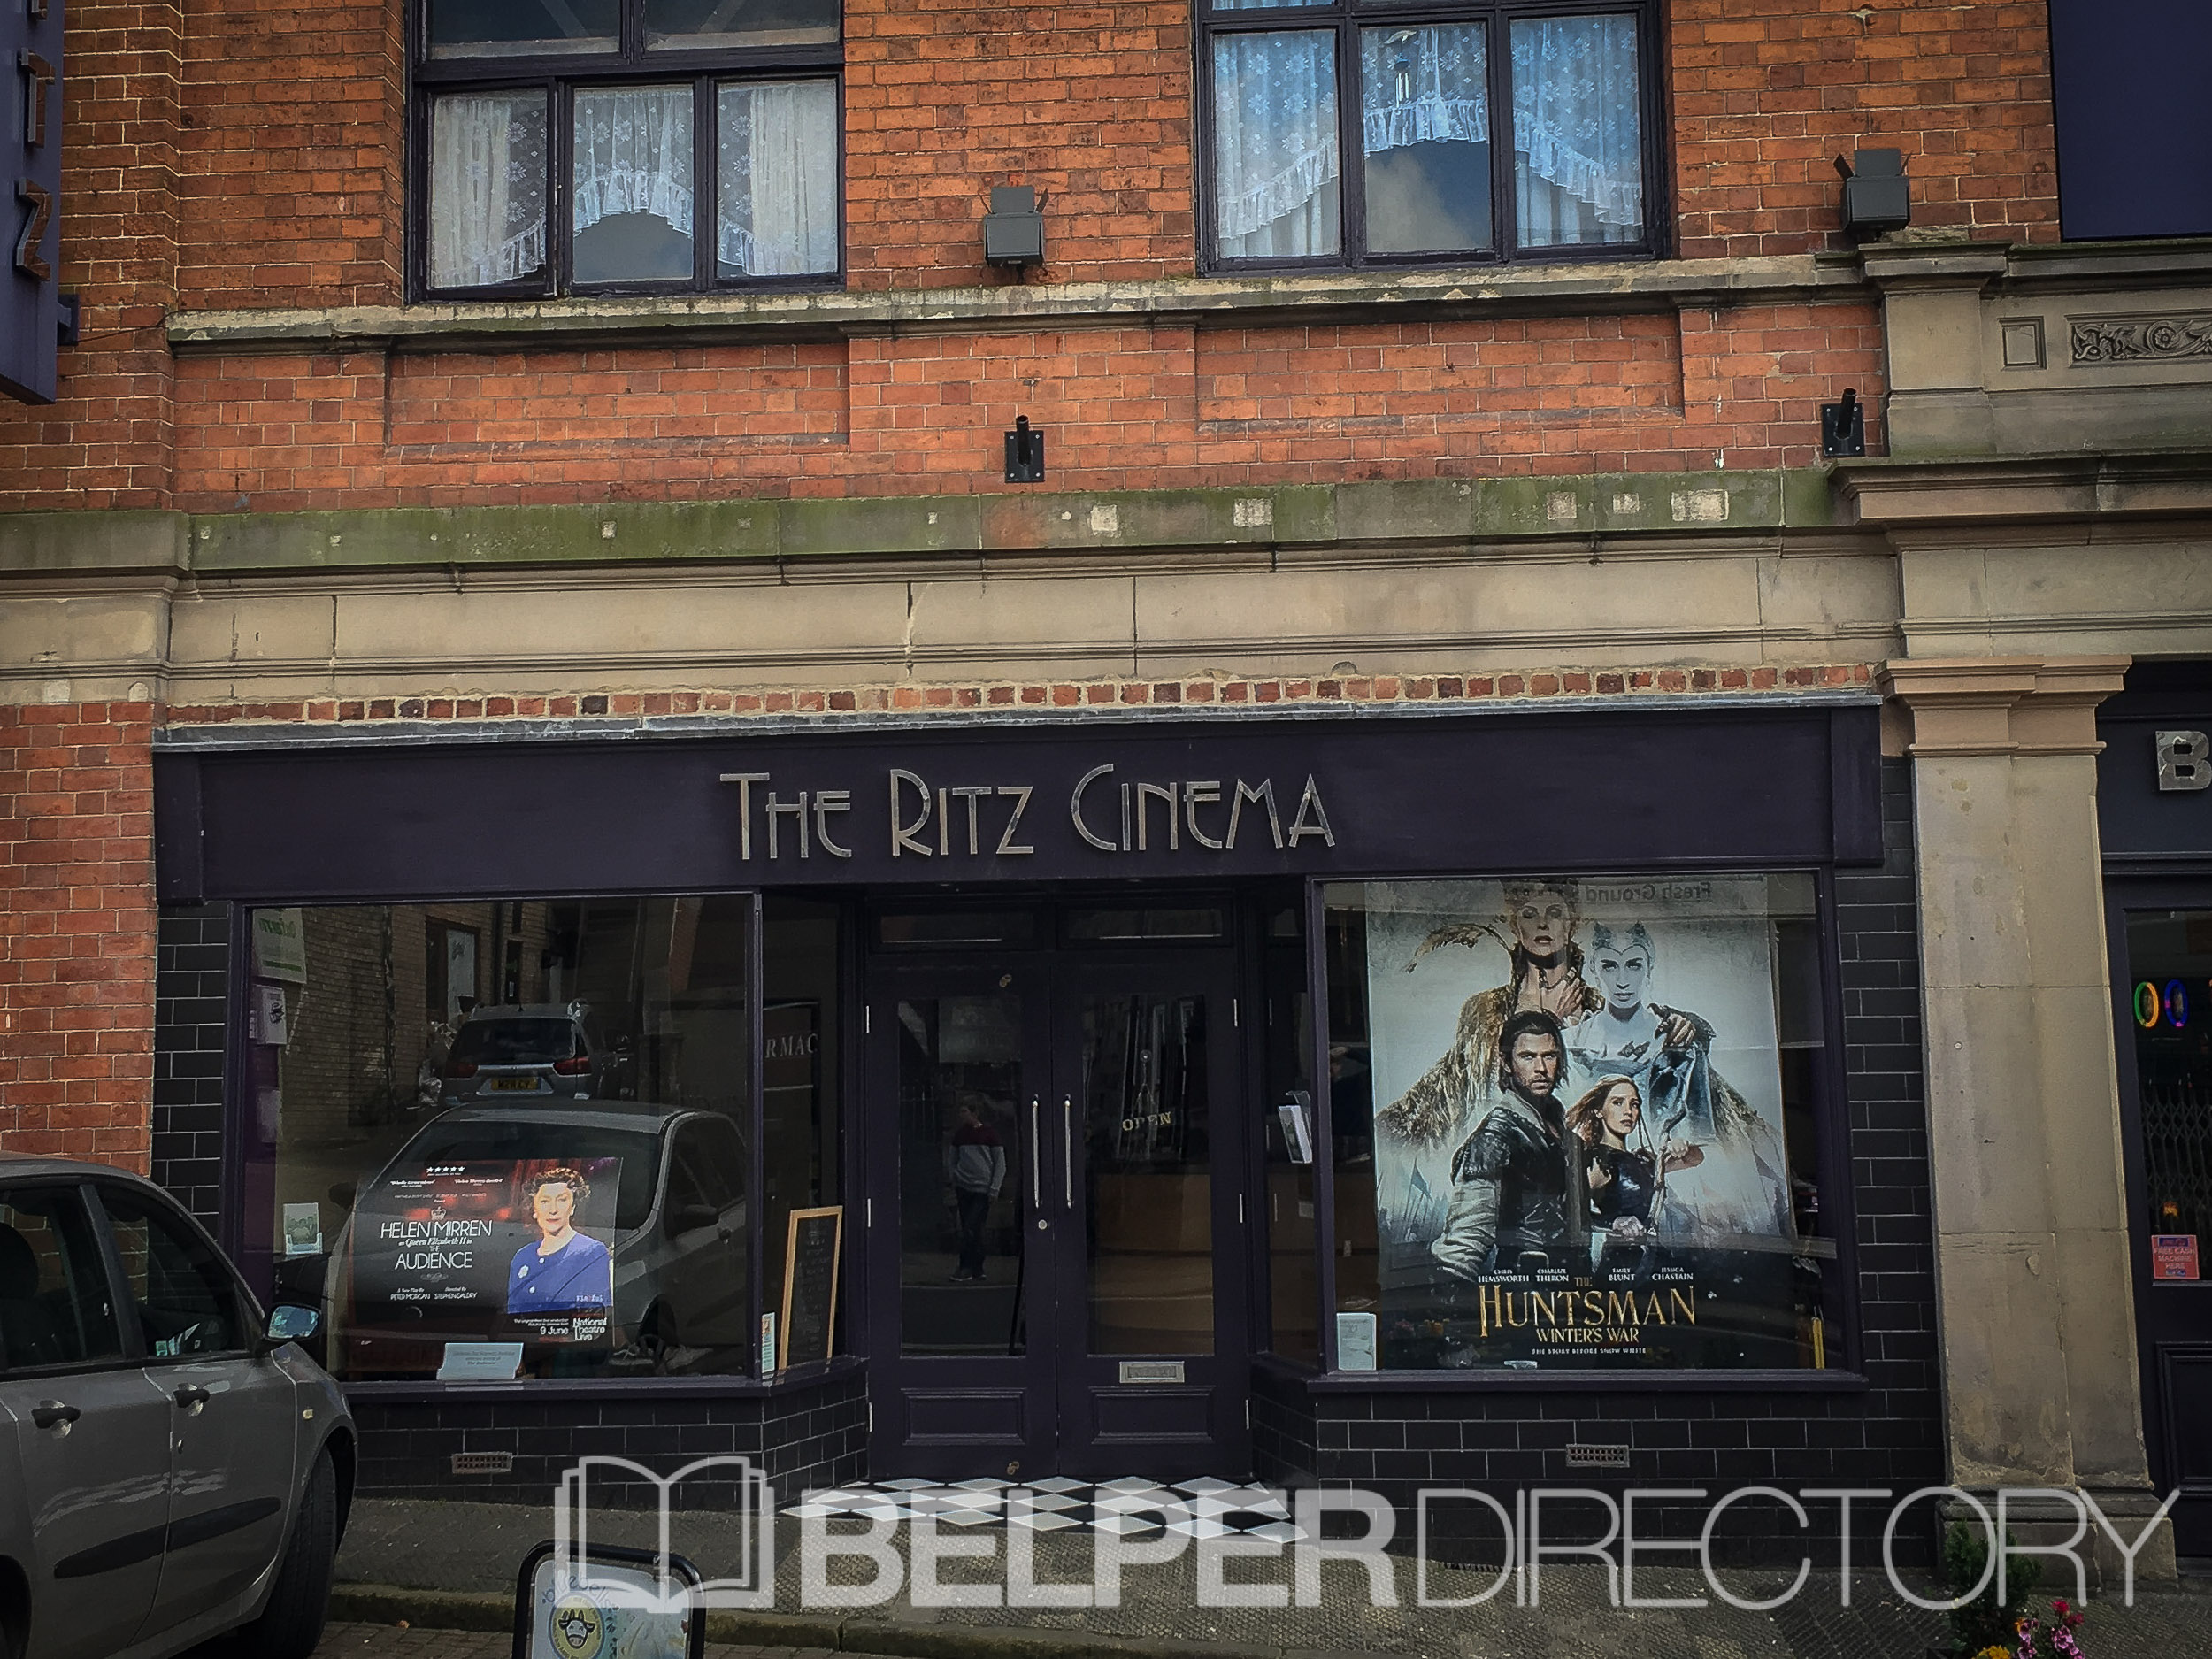 The Ritz Cinema Belper on Inter Search